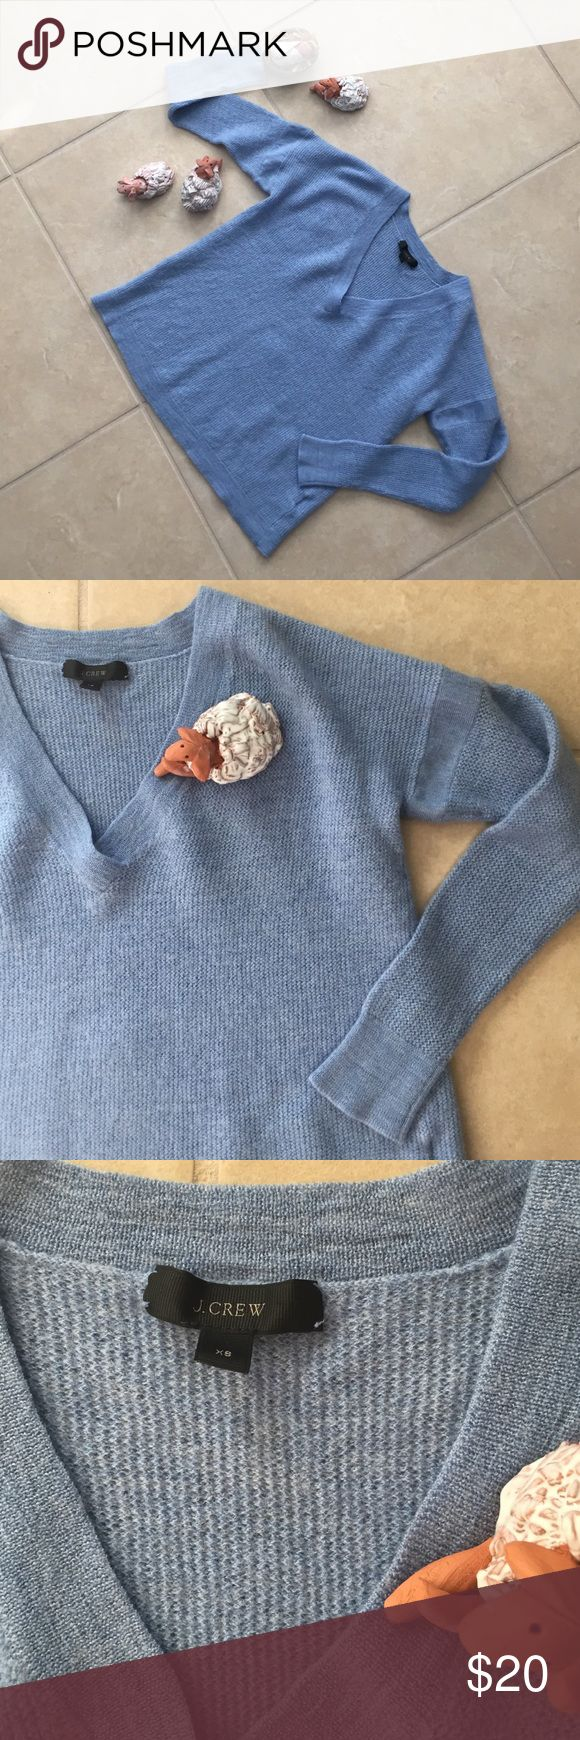 J Crew VNeck Soft periwinkle blue J Crew sweater, with armband detailing. 100% merino wool. Free sheep with purchase🐑 J. Crew Sweaters V-Necks